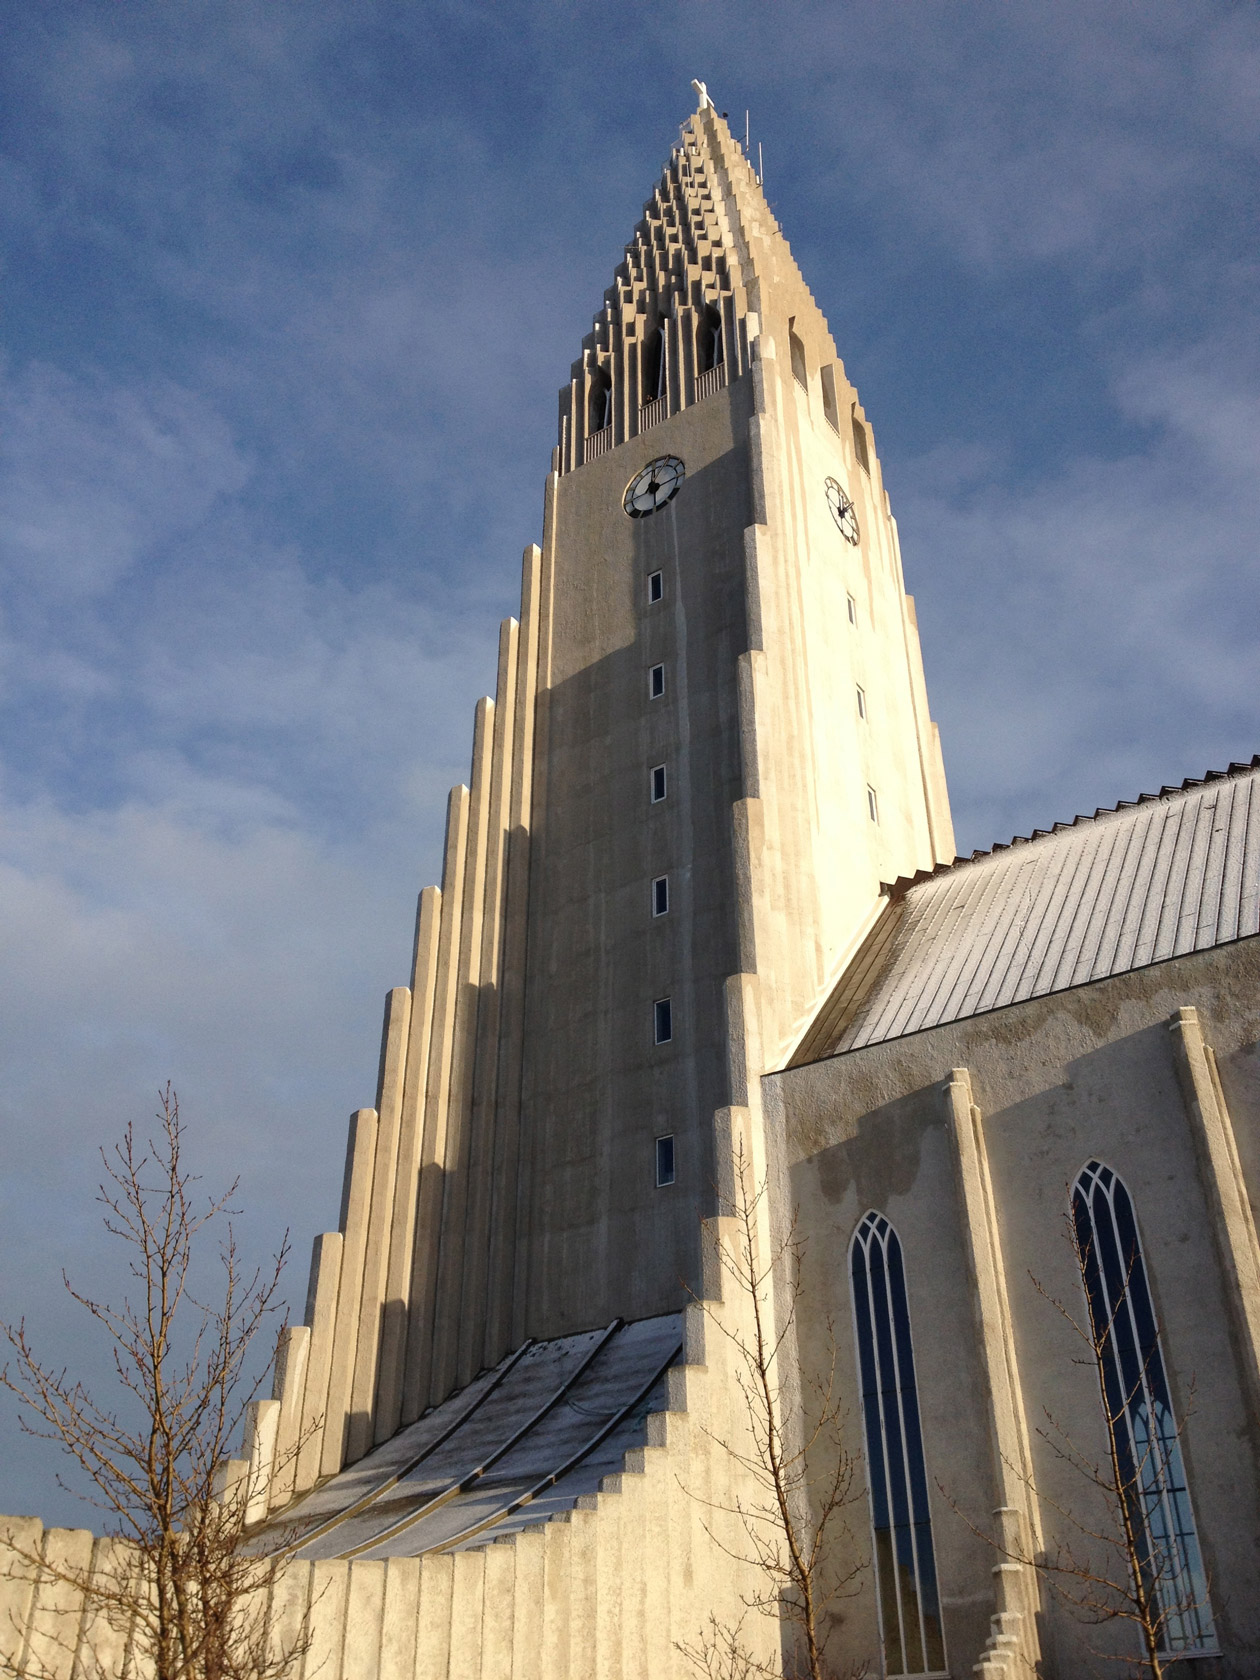 Hallgrímskirkja was inspired by the basalt columns formed when lava cools